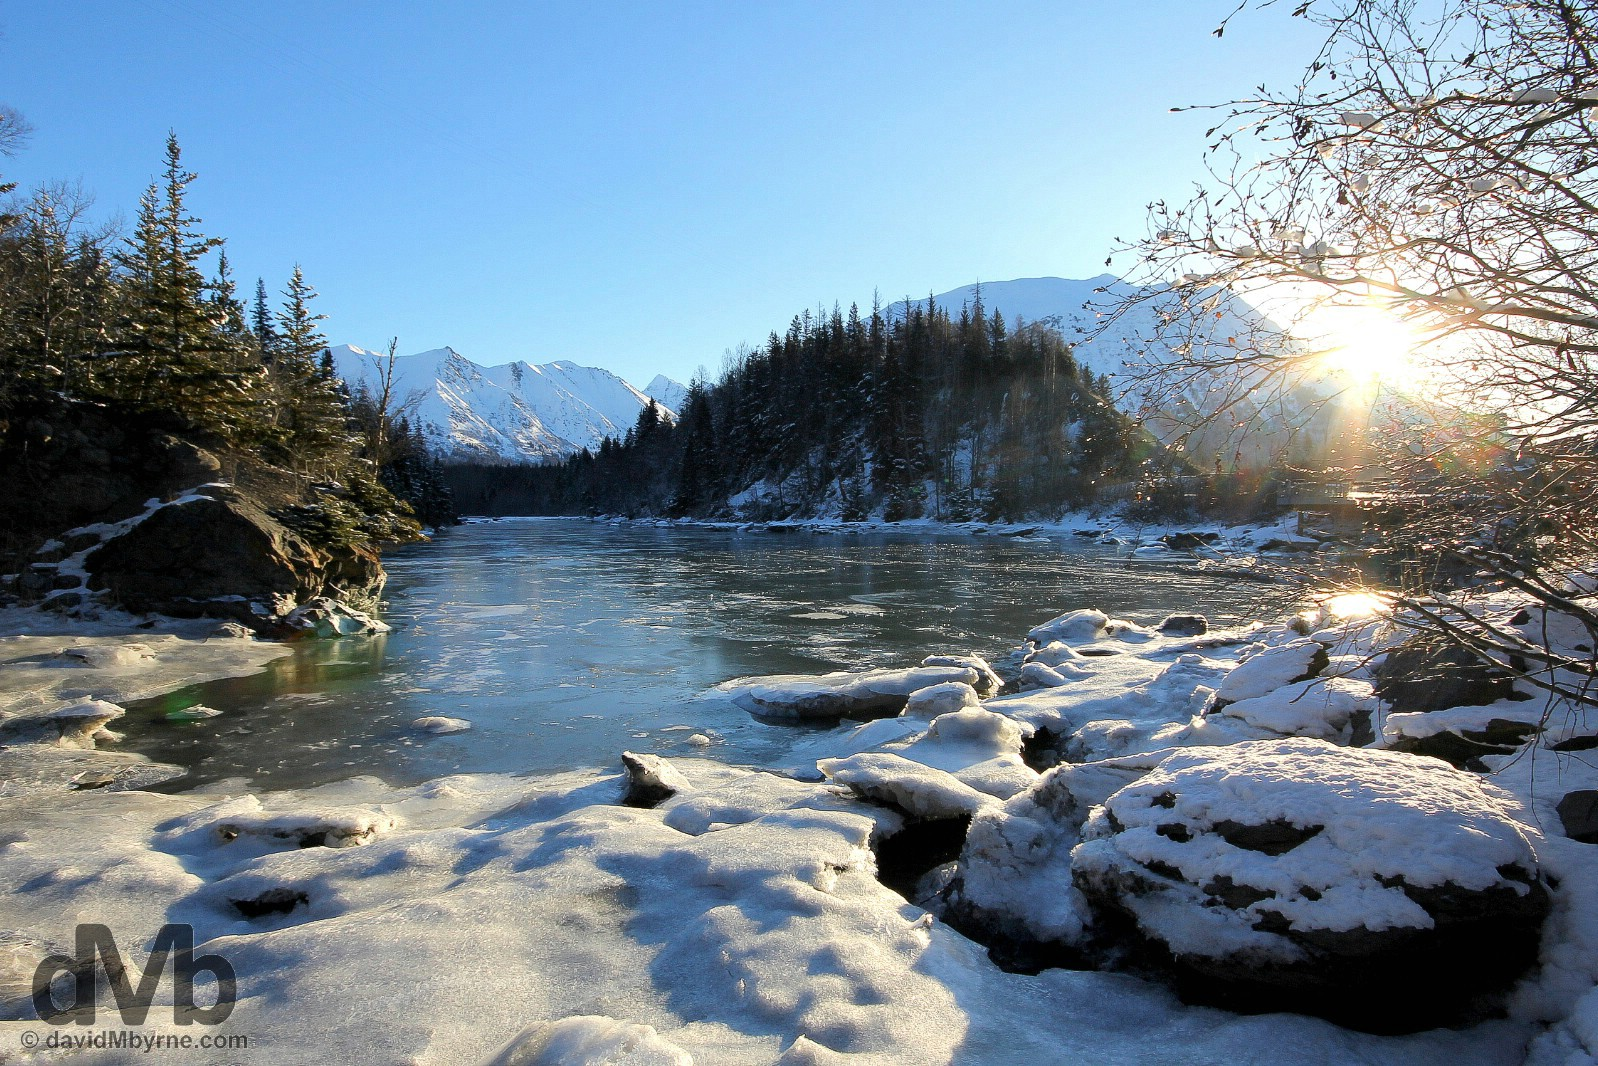 The first rays of the day in Bird Creek off the Seward Highway, Alaska, USA. March 12, 2013.